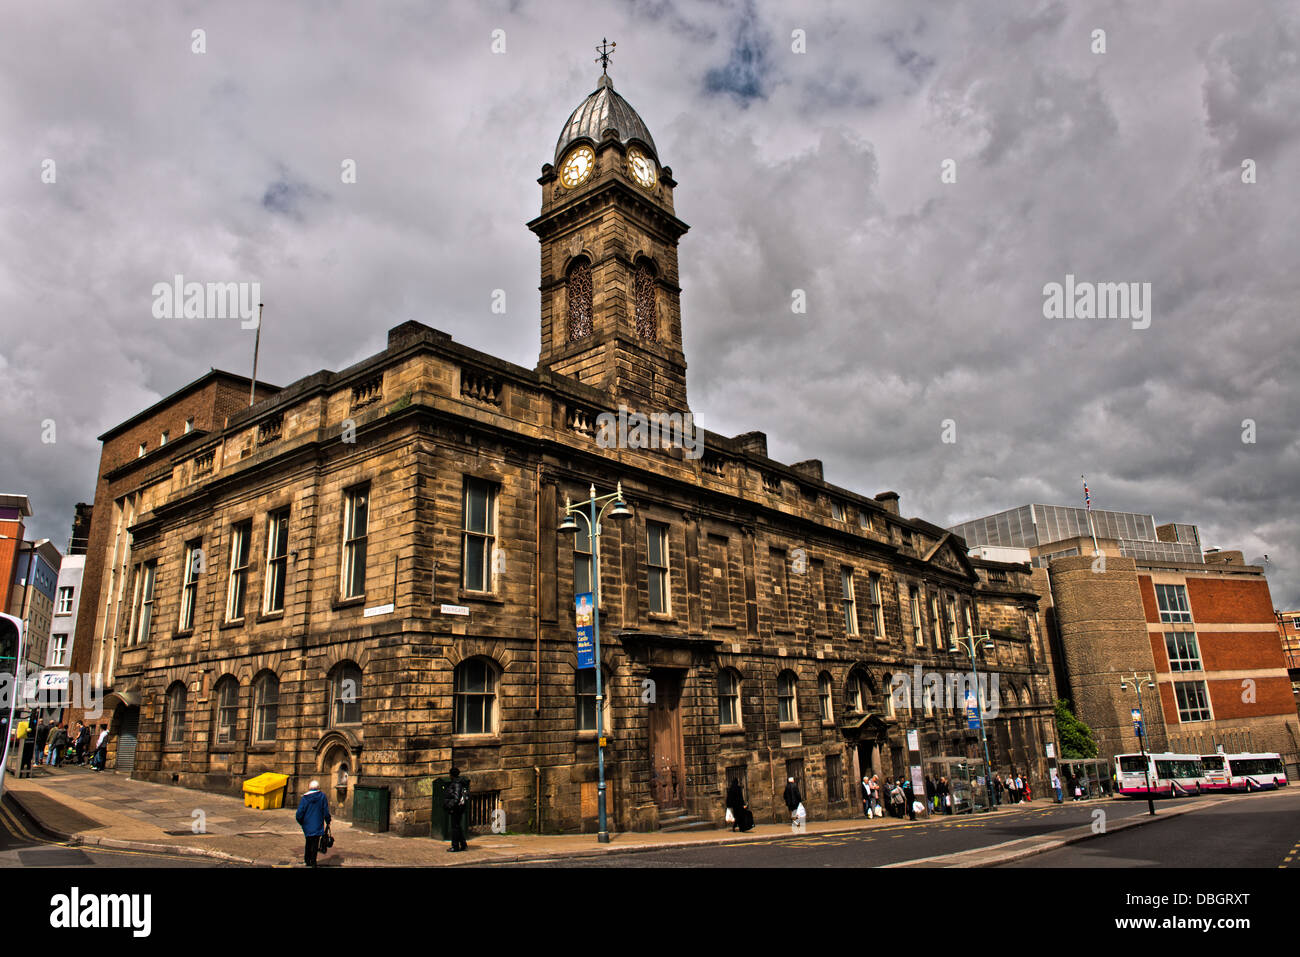 Sheffield courthouse now stands derelict in the city center. The Victorian building is awaiting redevelopment. - Stock Image